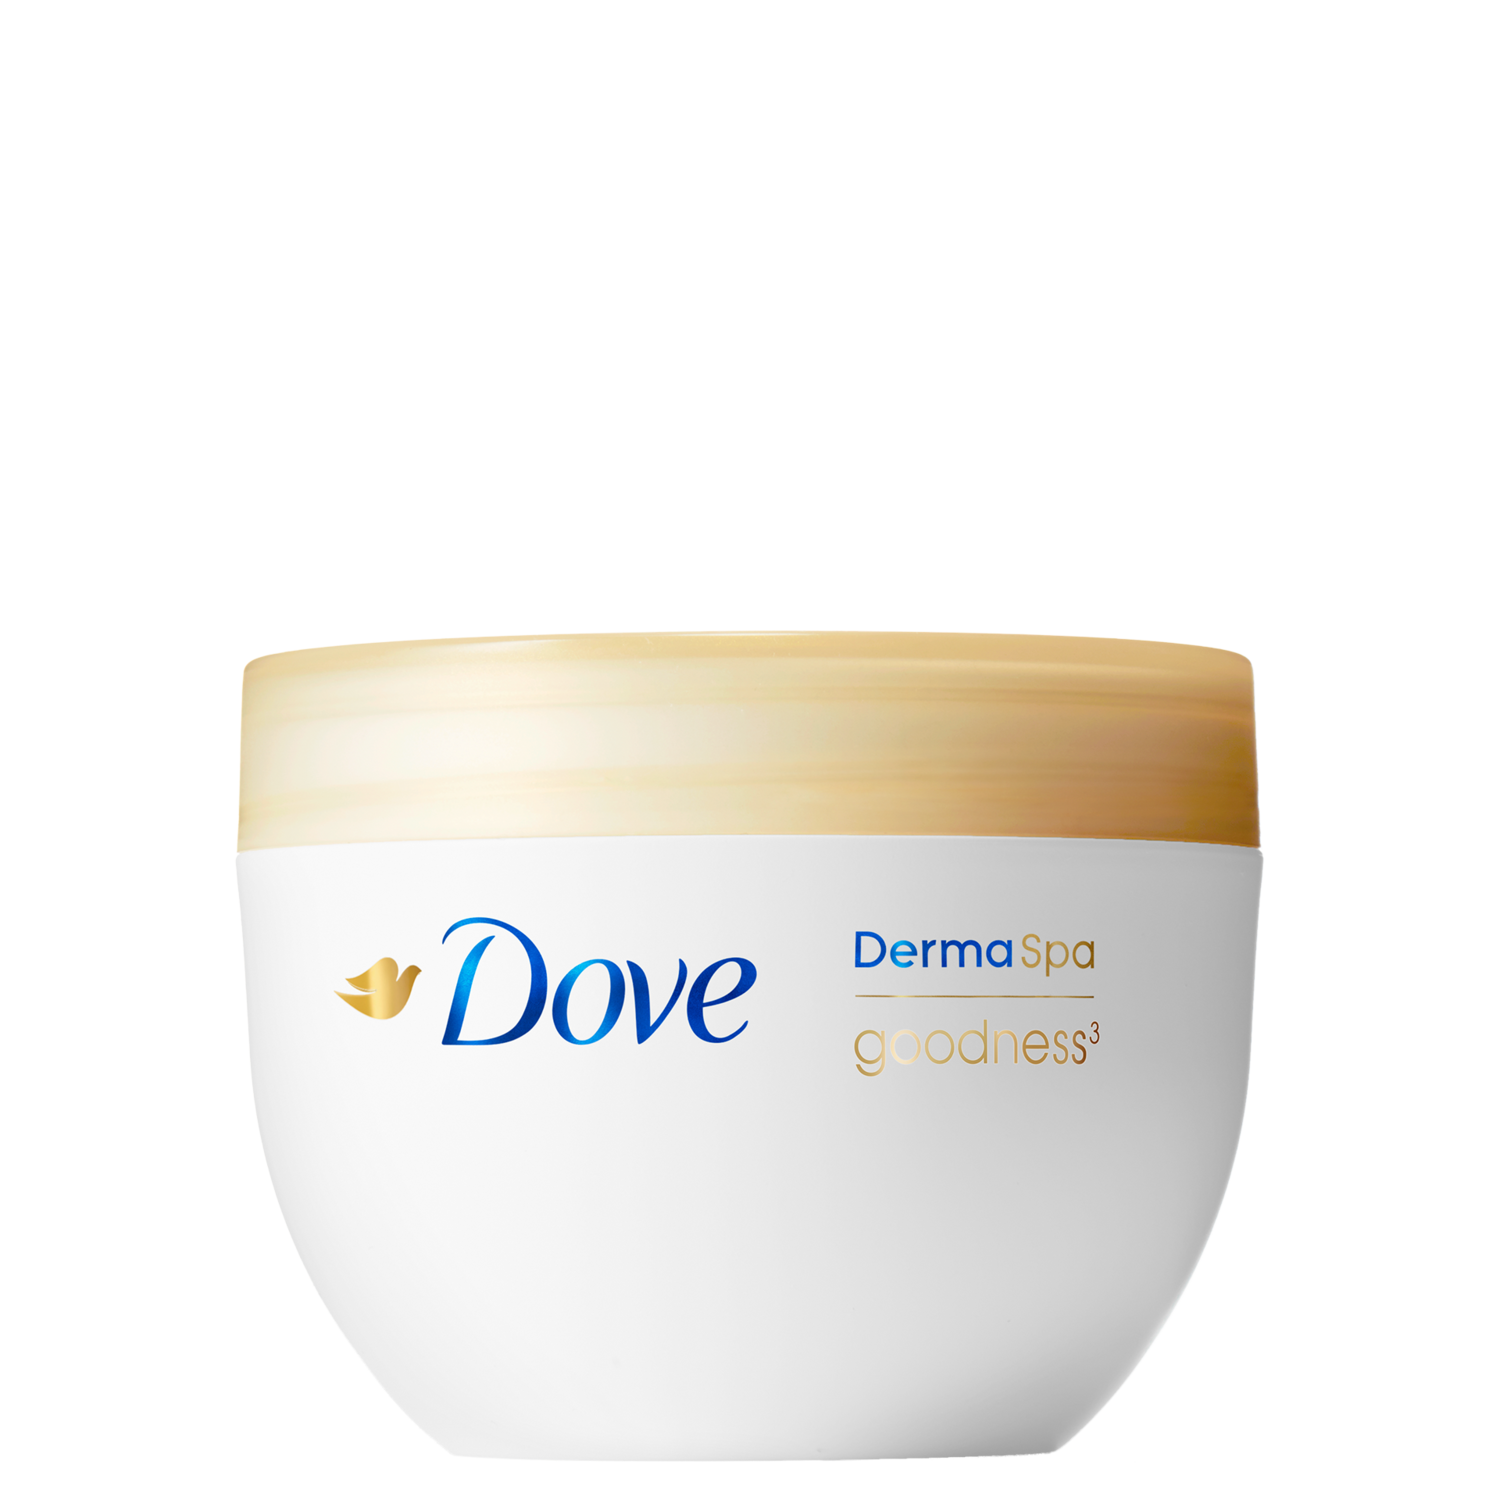 Dove Dermaspa Goodness 179 Body Cream